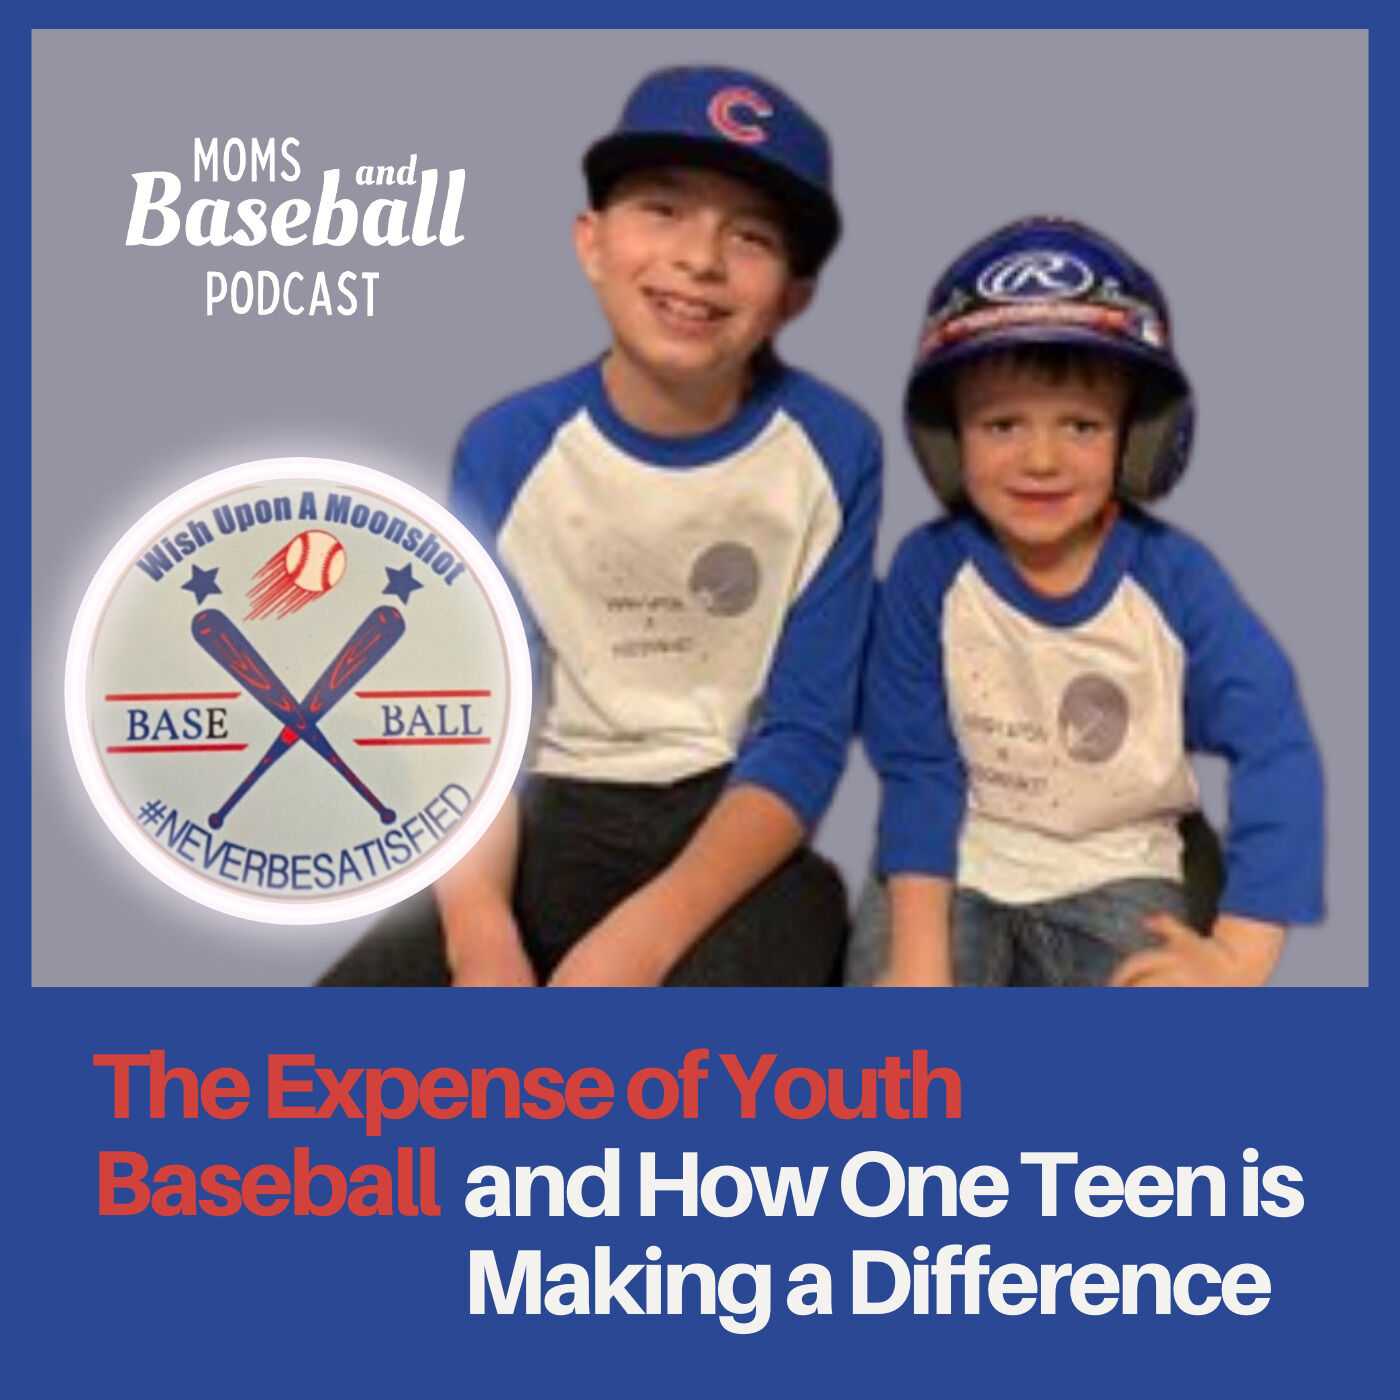 039: The Expense of Youth Baseball & How One Teen Is Making a Difference